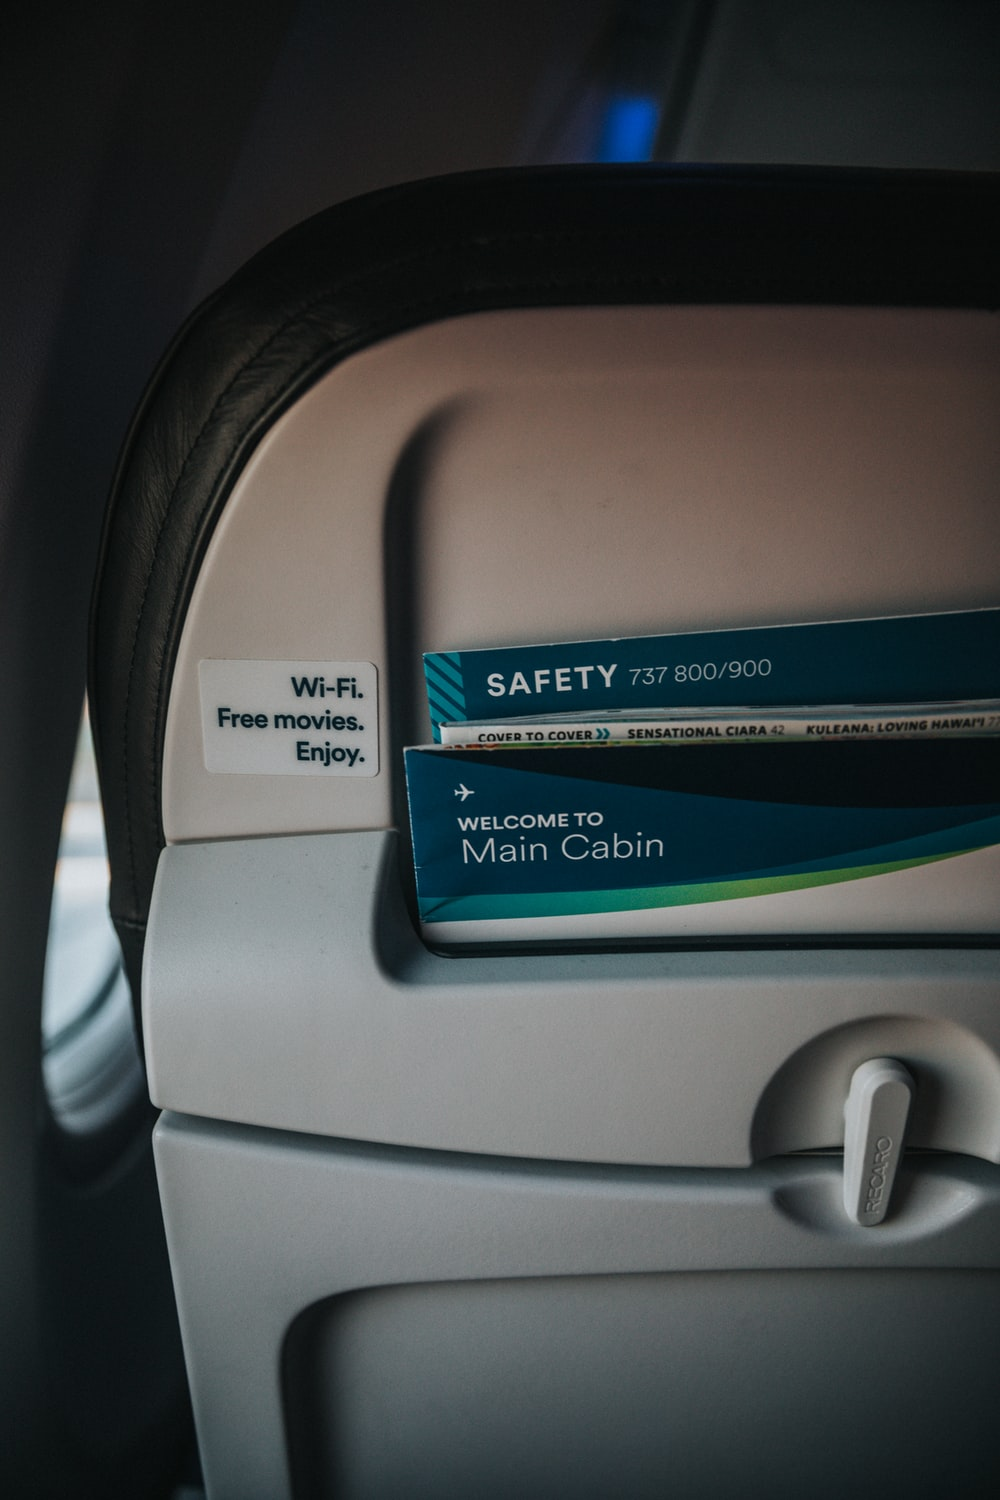 safety instructions on an airplane